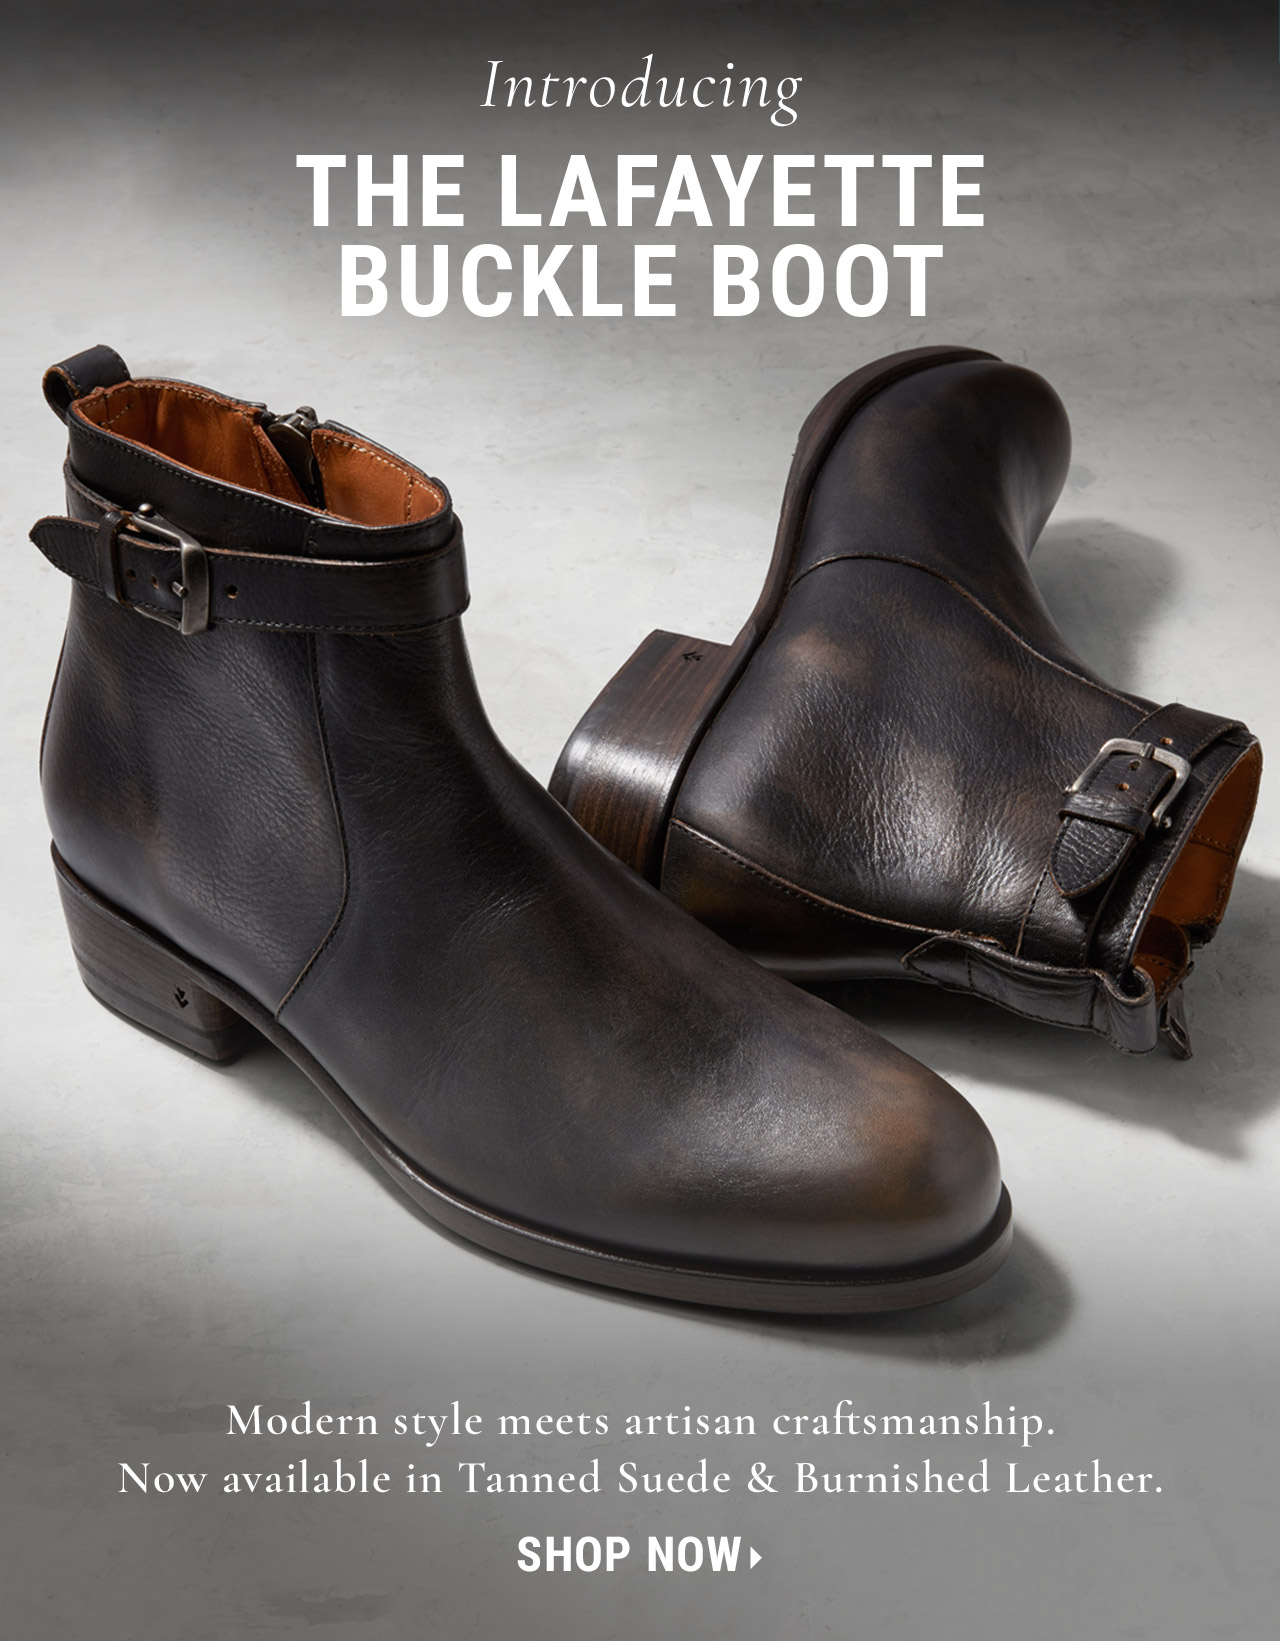 Lafayette Buckle Boot John Varvatos Collection soYHNwS